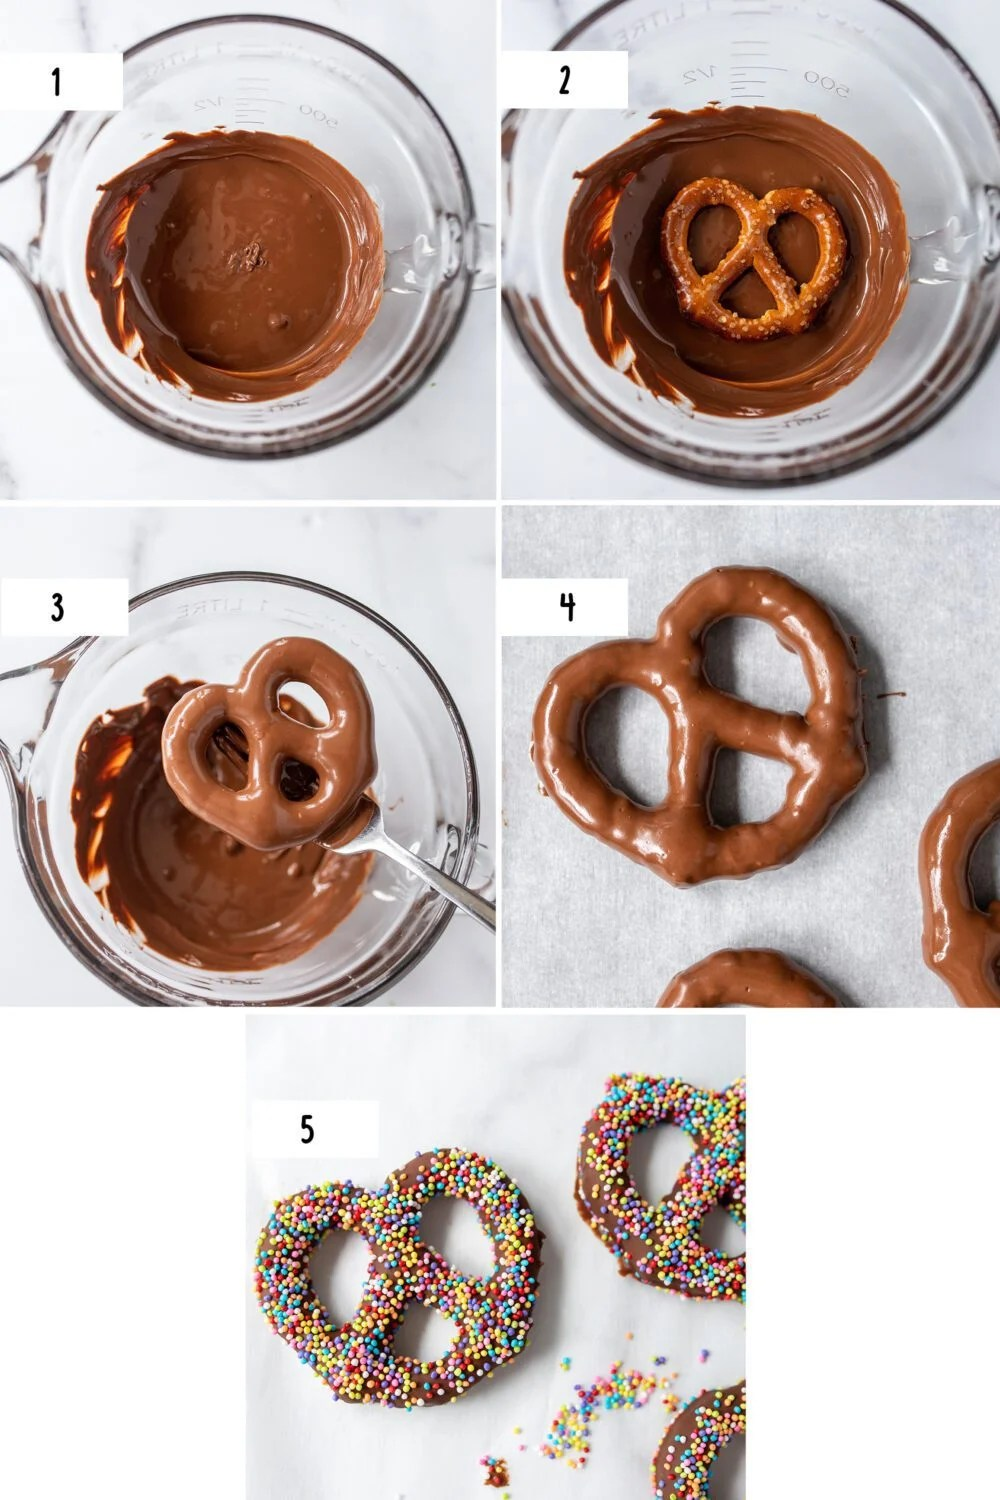 steps how to make chocolate covered pretzels